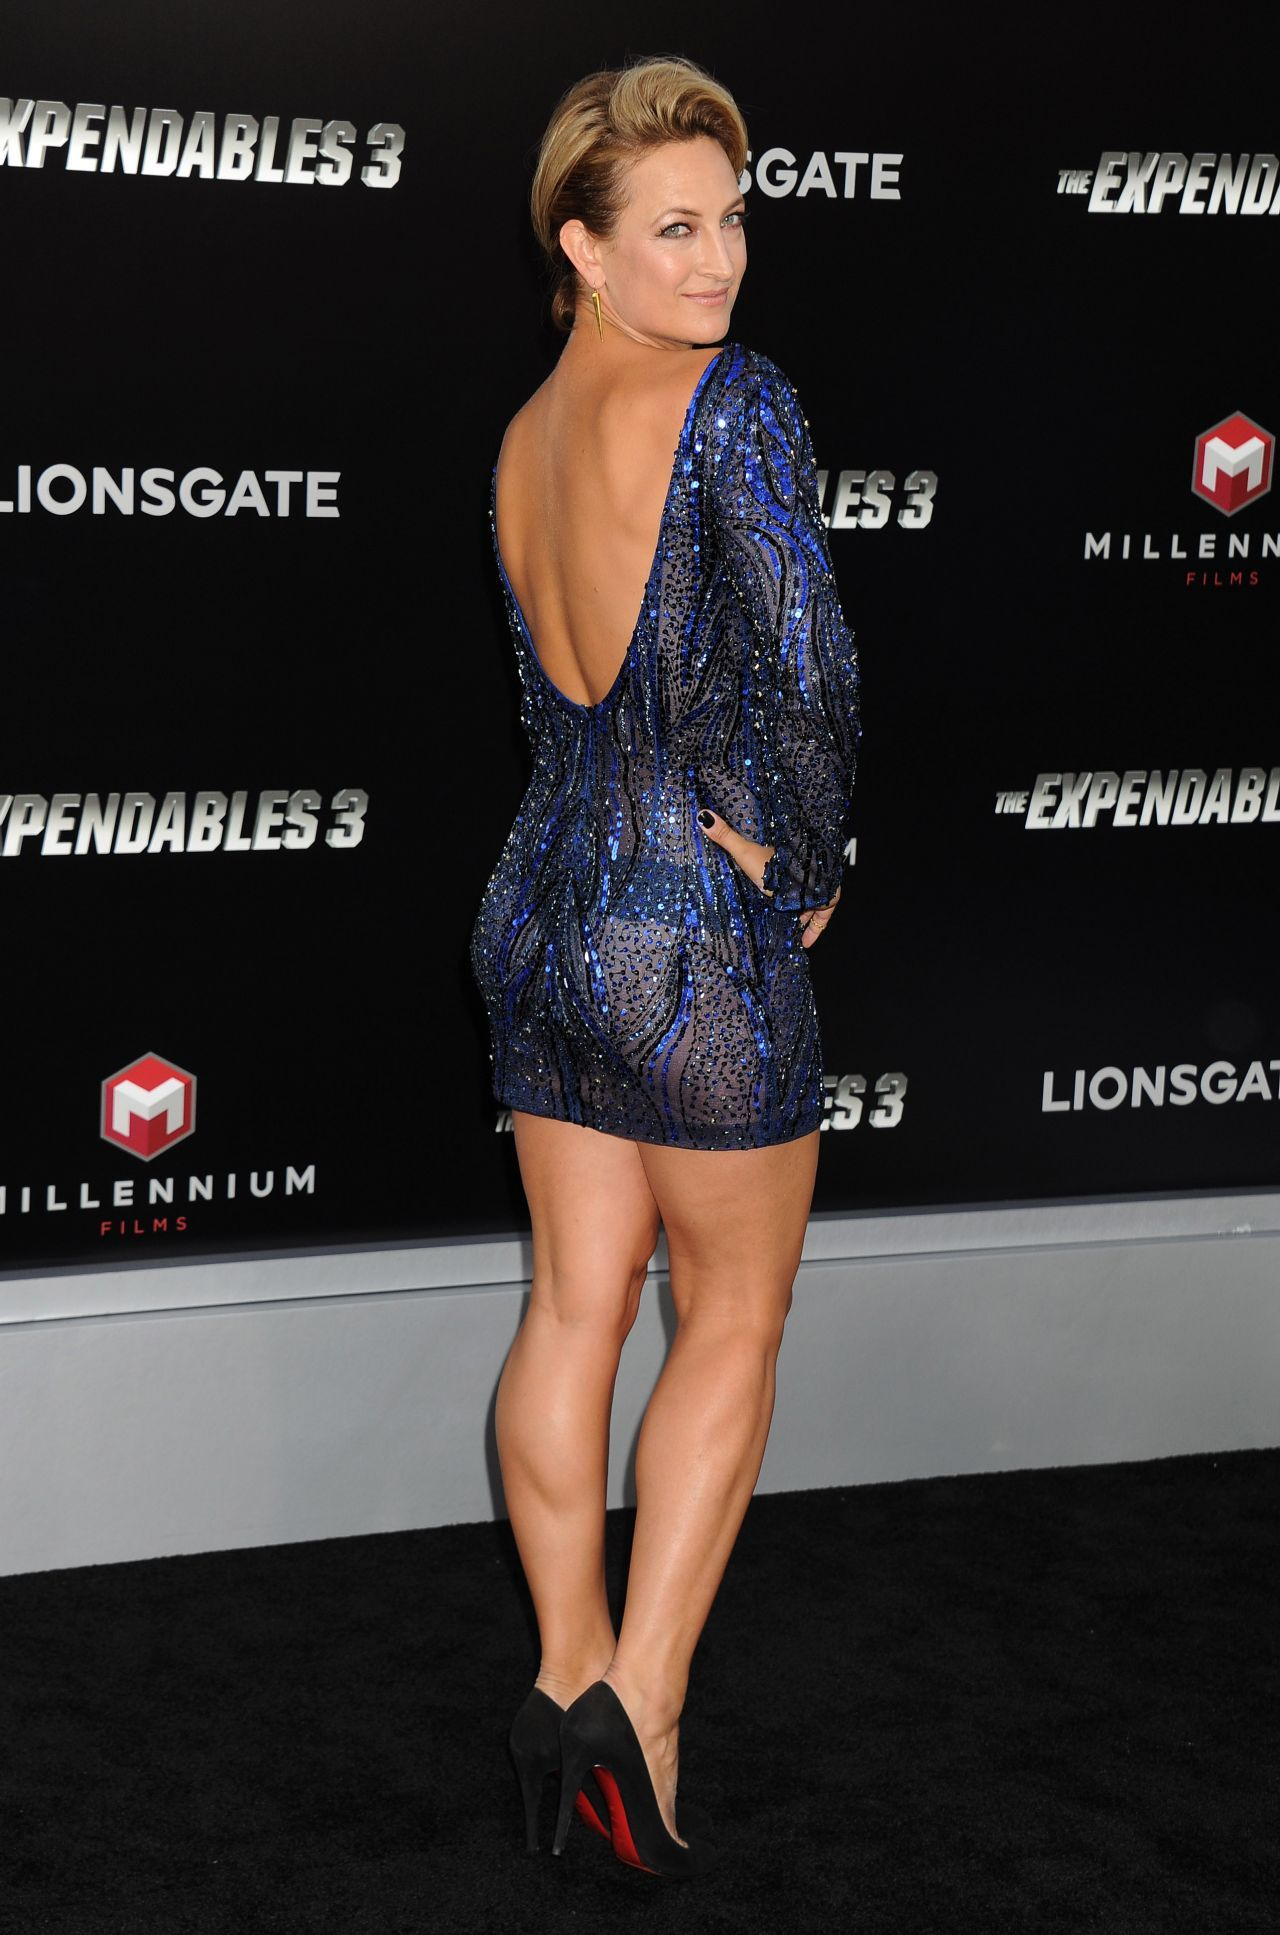 zoe-bell-the-expendables-3-premiere-in-hollywood_3.jpg ...